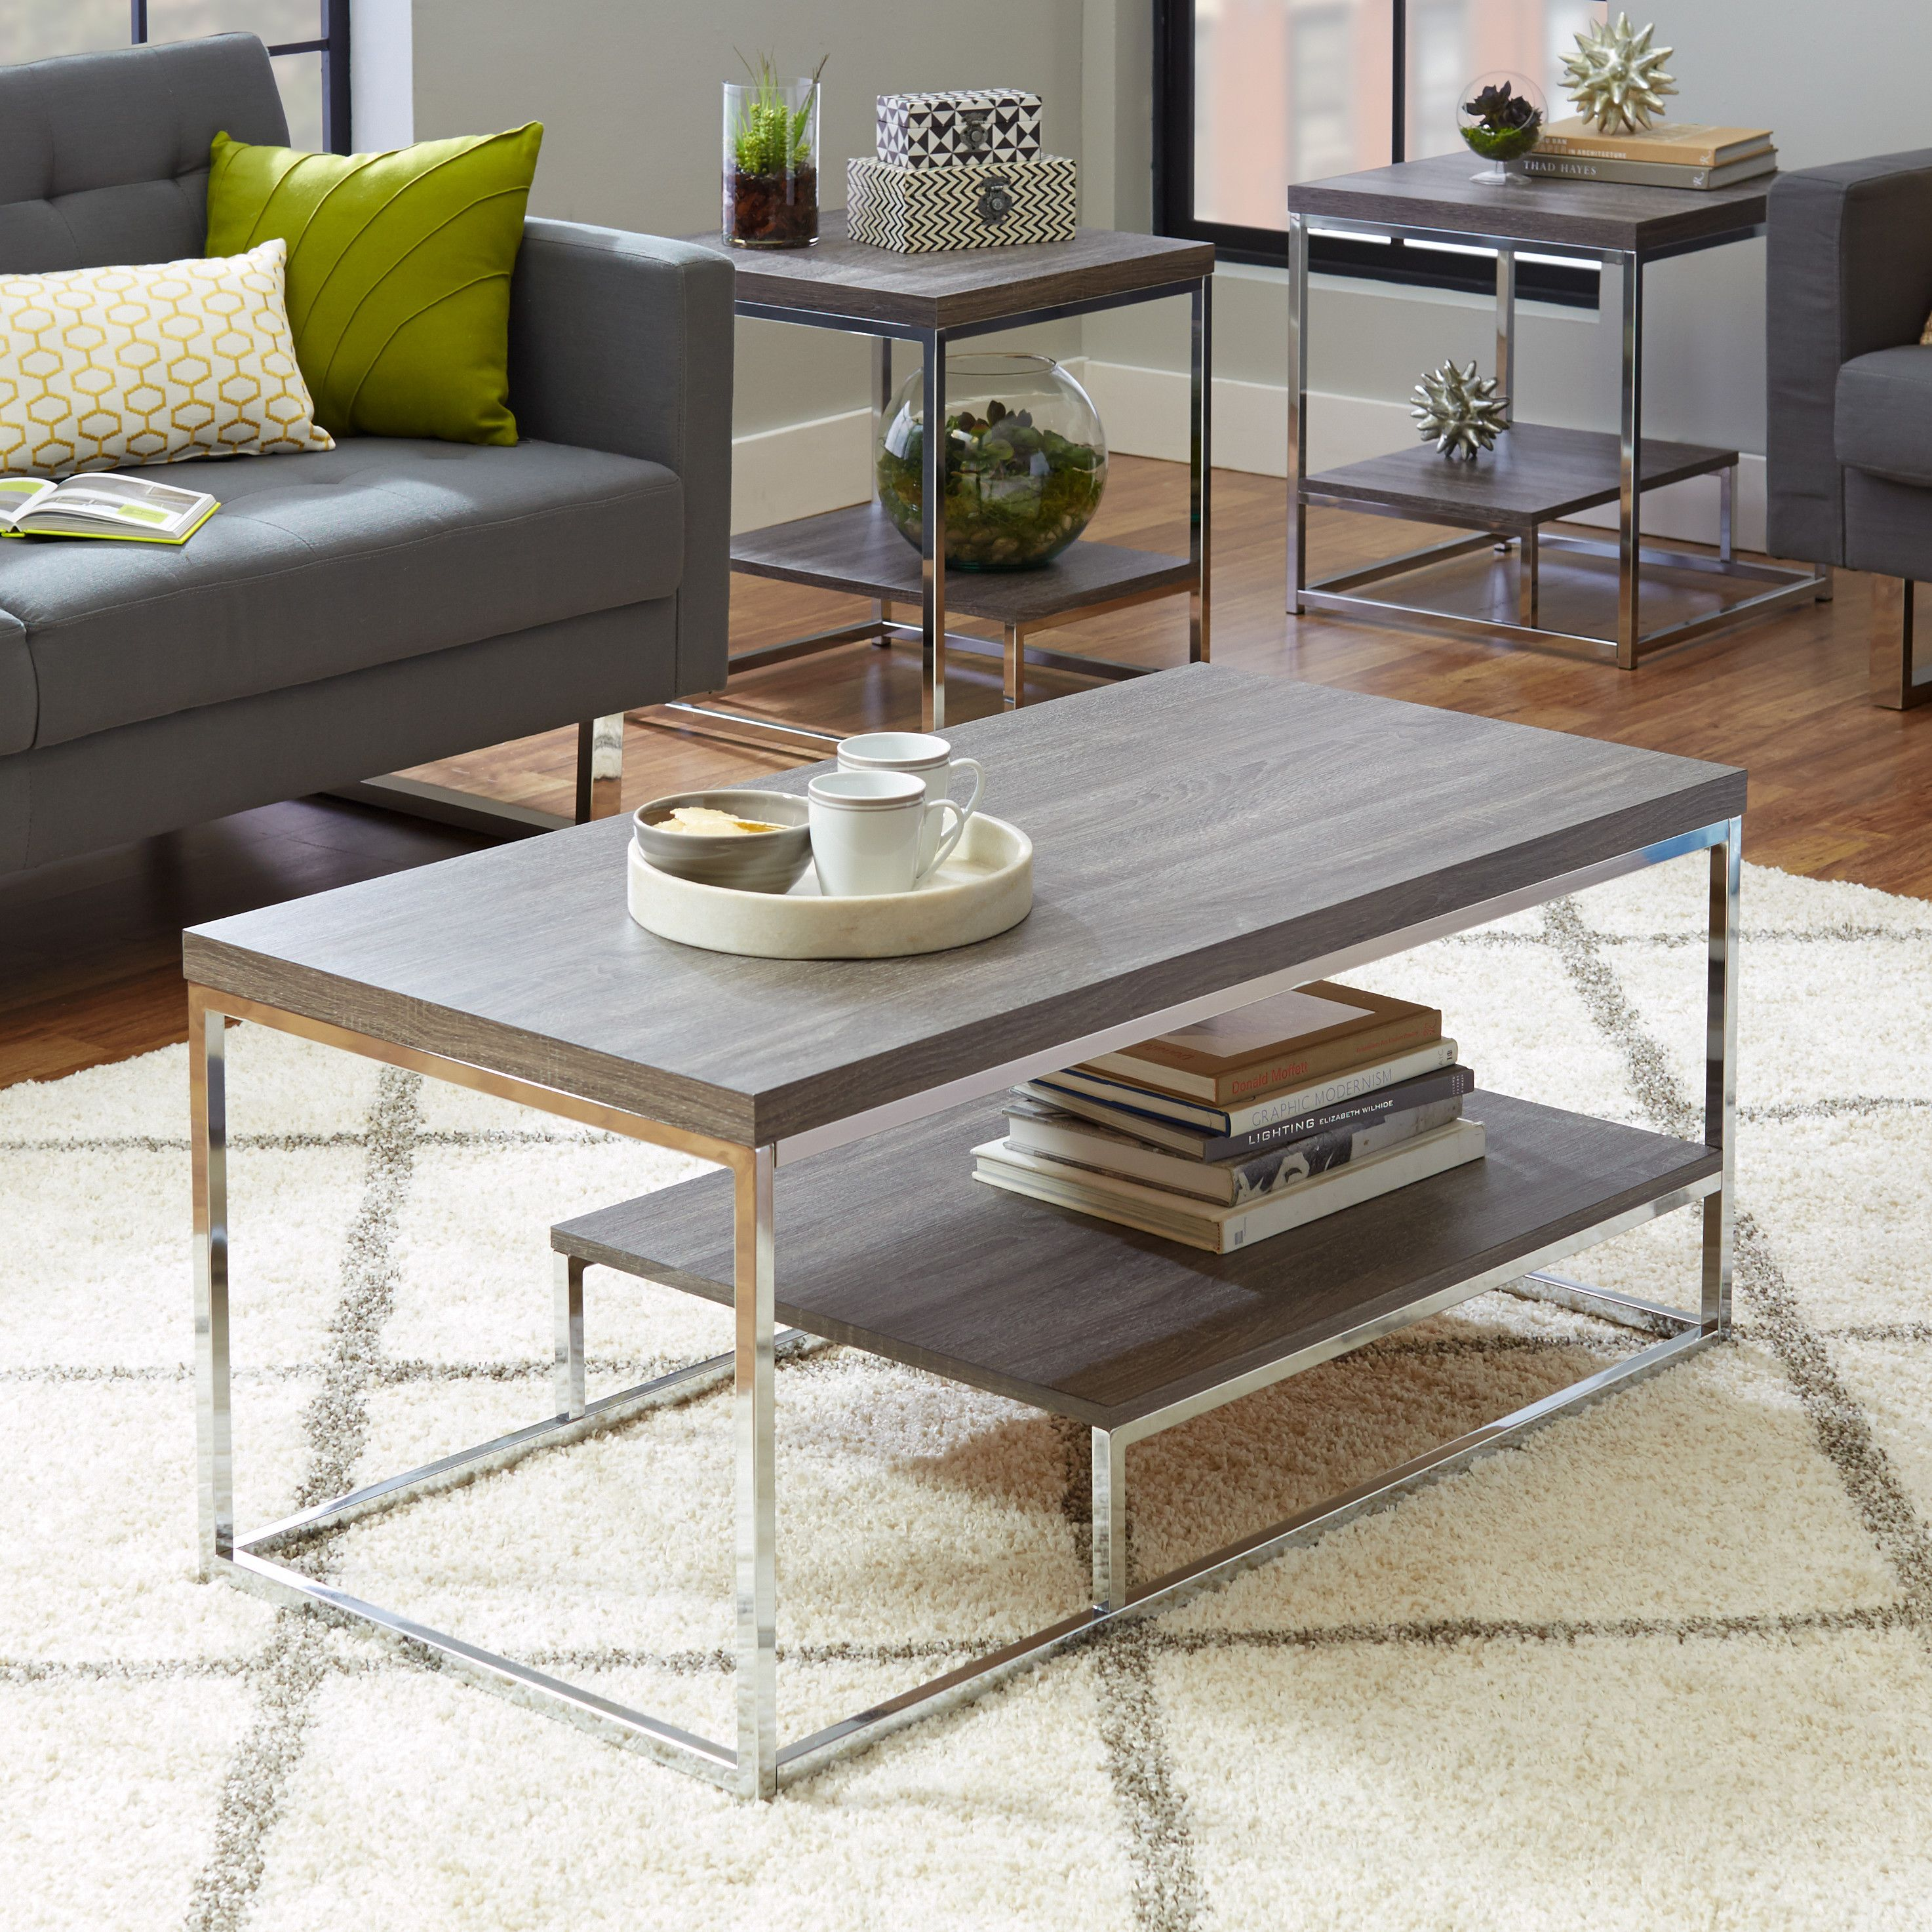 Philippos 3 Piece Coffee Table Set Coffee Table Modern Living Room Table Living Room Table Sets [ 2947 x 2947 Pixel ]